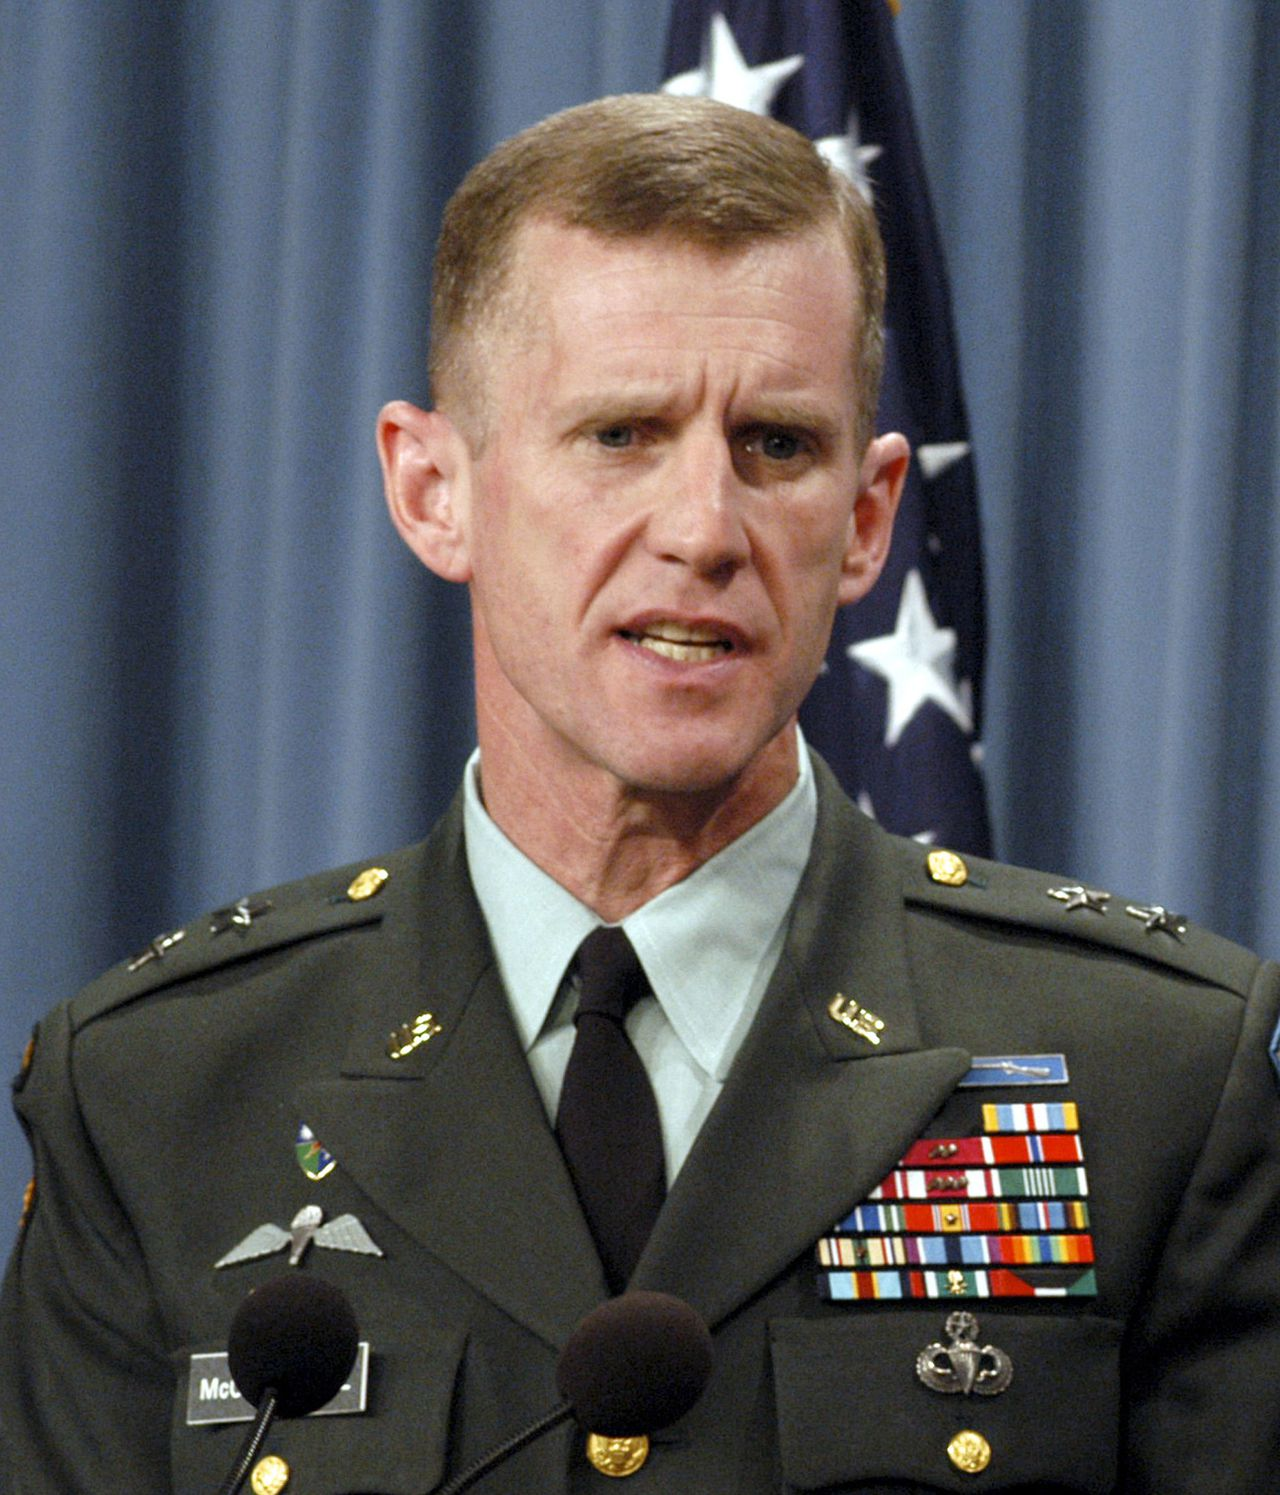 McChrystal Foto Reuters U.S. Army Maj. Gen. Stanley A. McChrystal answers a reporter's question on the overnight developments of coalition forces in Baghdad during a Pentagon news conference in Washington, in this April 8, 2003 file photo. McChrystal will replace the top U.S. and NATO commander in Afghanistan, U.S. General David McKiernan, less than a year after he took over the war effort there, CNN reported on May 11, 2009. McChrystal, a former commander of special operations forces at Fort Bragg, North Carolina, is currently the director of the U.S. military's Joint Staff. REUTERS/DoD photo by Helene C. Stikkel/Released/Handout (UNITED STATES MILITARY POLITICS HEADSHOT) FOR EDITORIAL USE ONLY. NOT FOR SALE FOR MARKETING OR ADVERTISING CAMPAIGNS